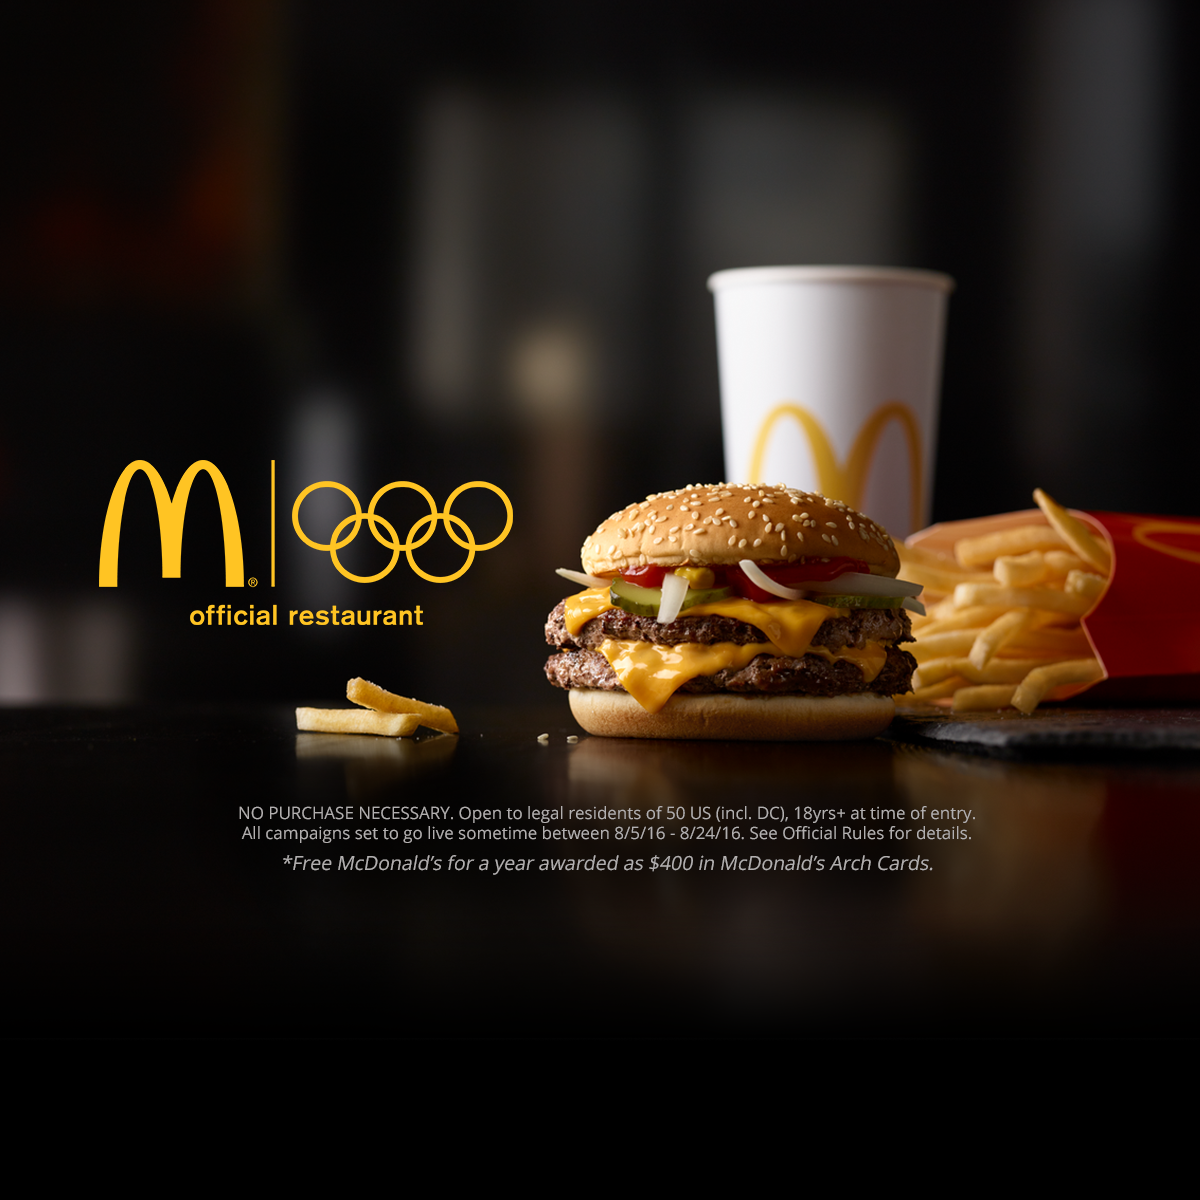 mcdonald's polishing the golden arches (pdf) or read online for free global marketing case report on golden arches in india  mcdonald's polishing the golden arches uploaded by mohammed.